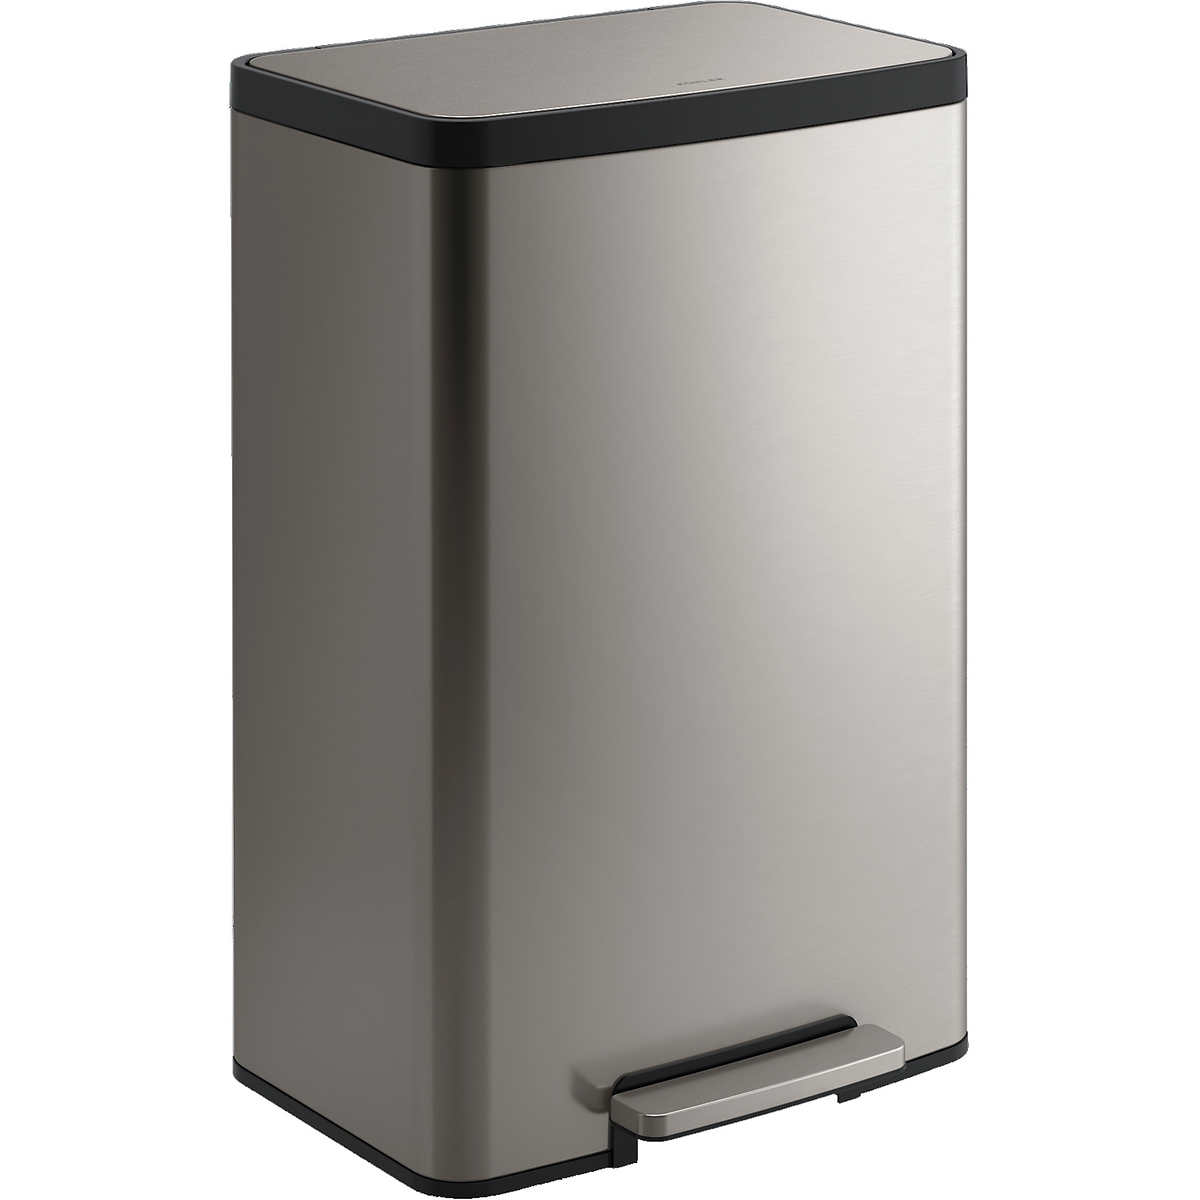 Kohler 13 Gallon Step Trash Can Stainless Steel